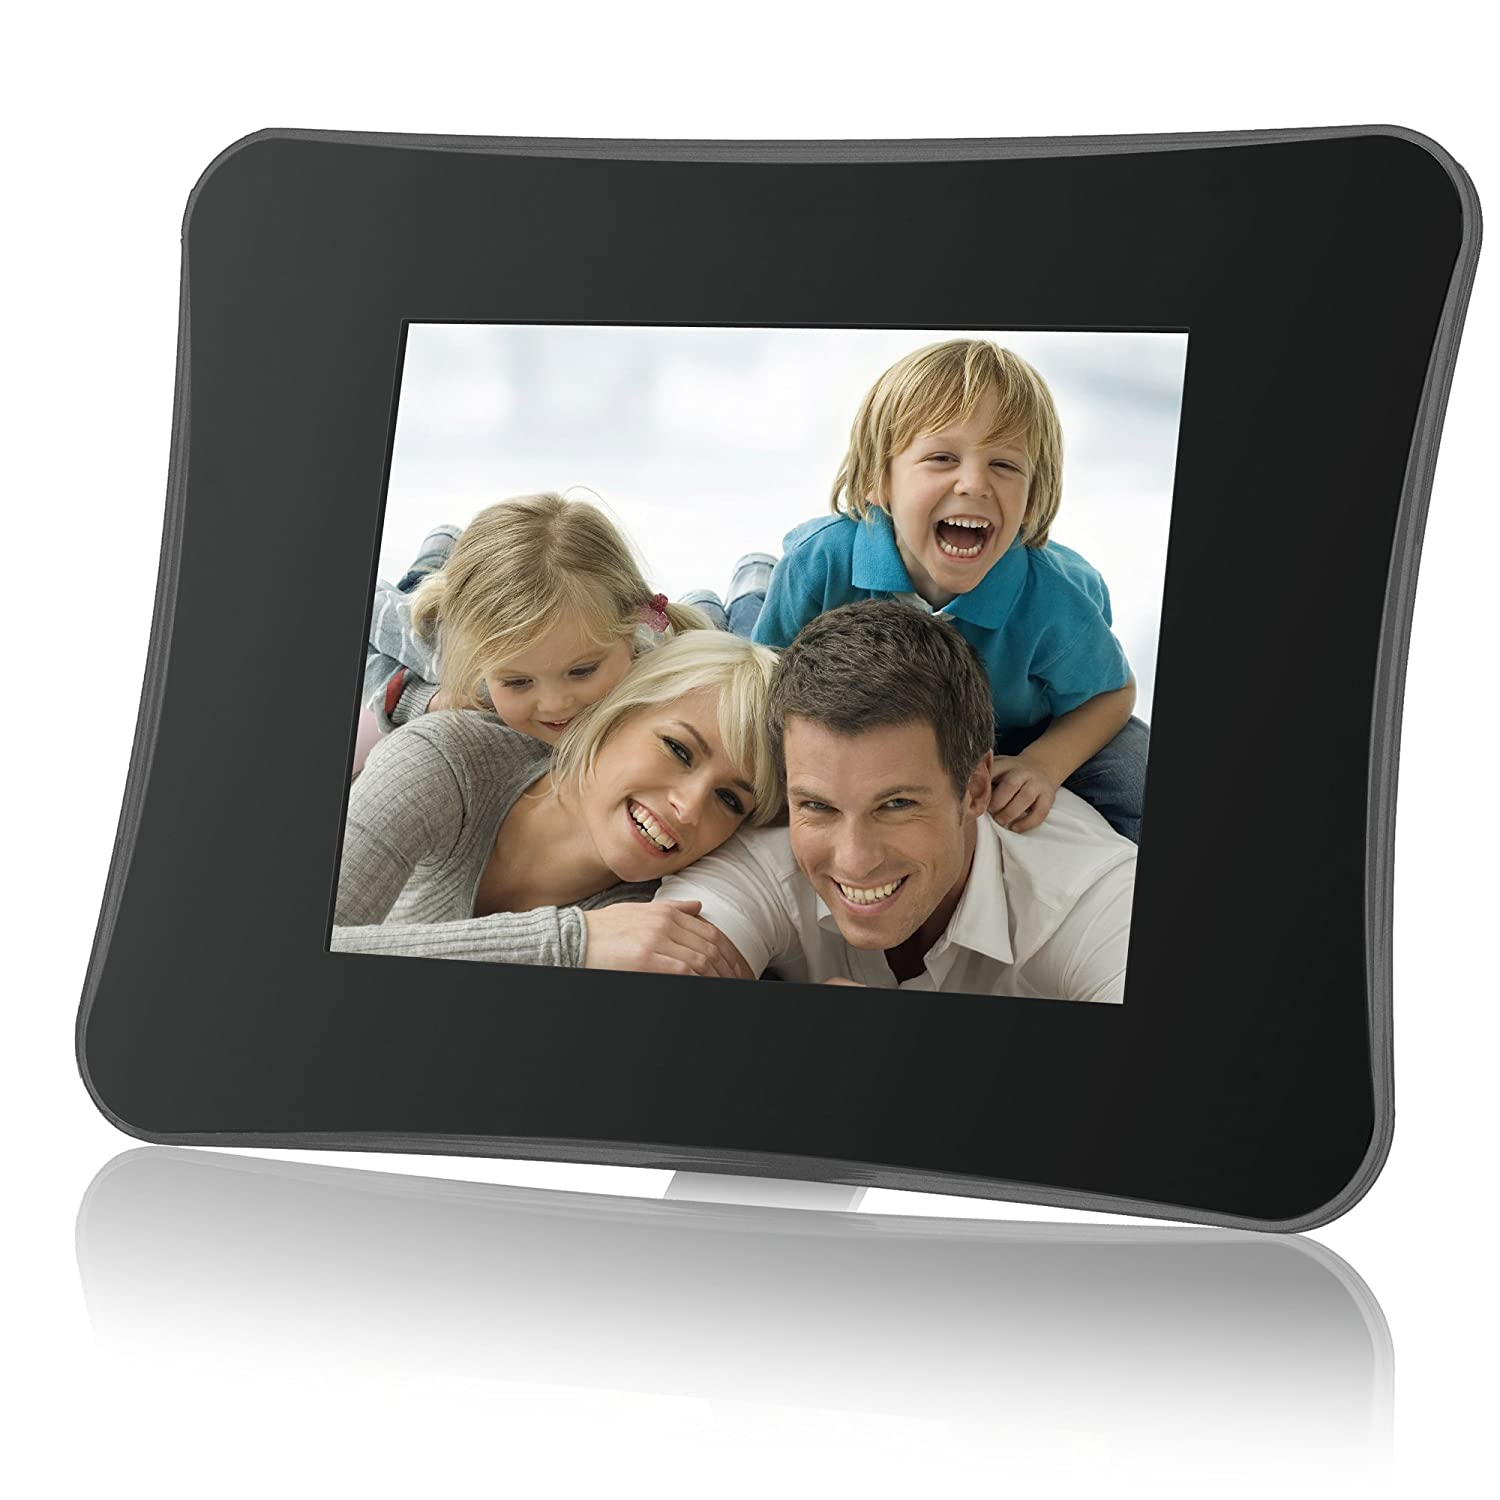 Amazon.com : Coby DP750 7-Inch Photo Frame with Multimedia Playback ...